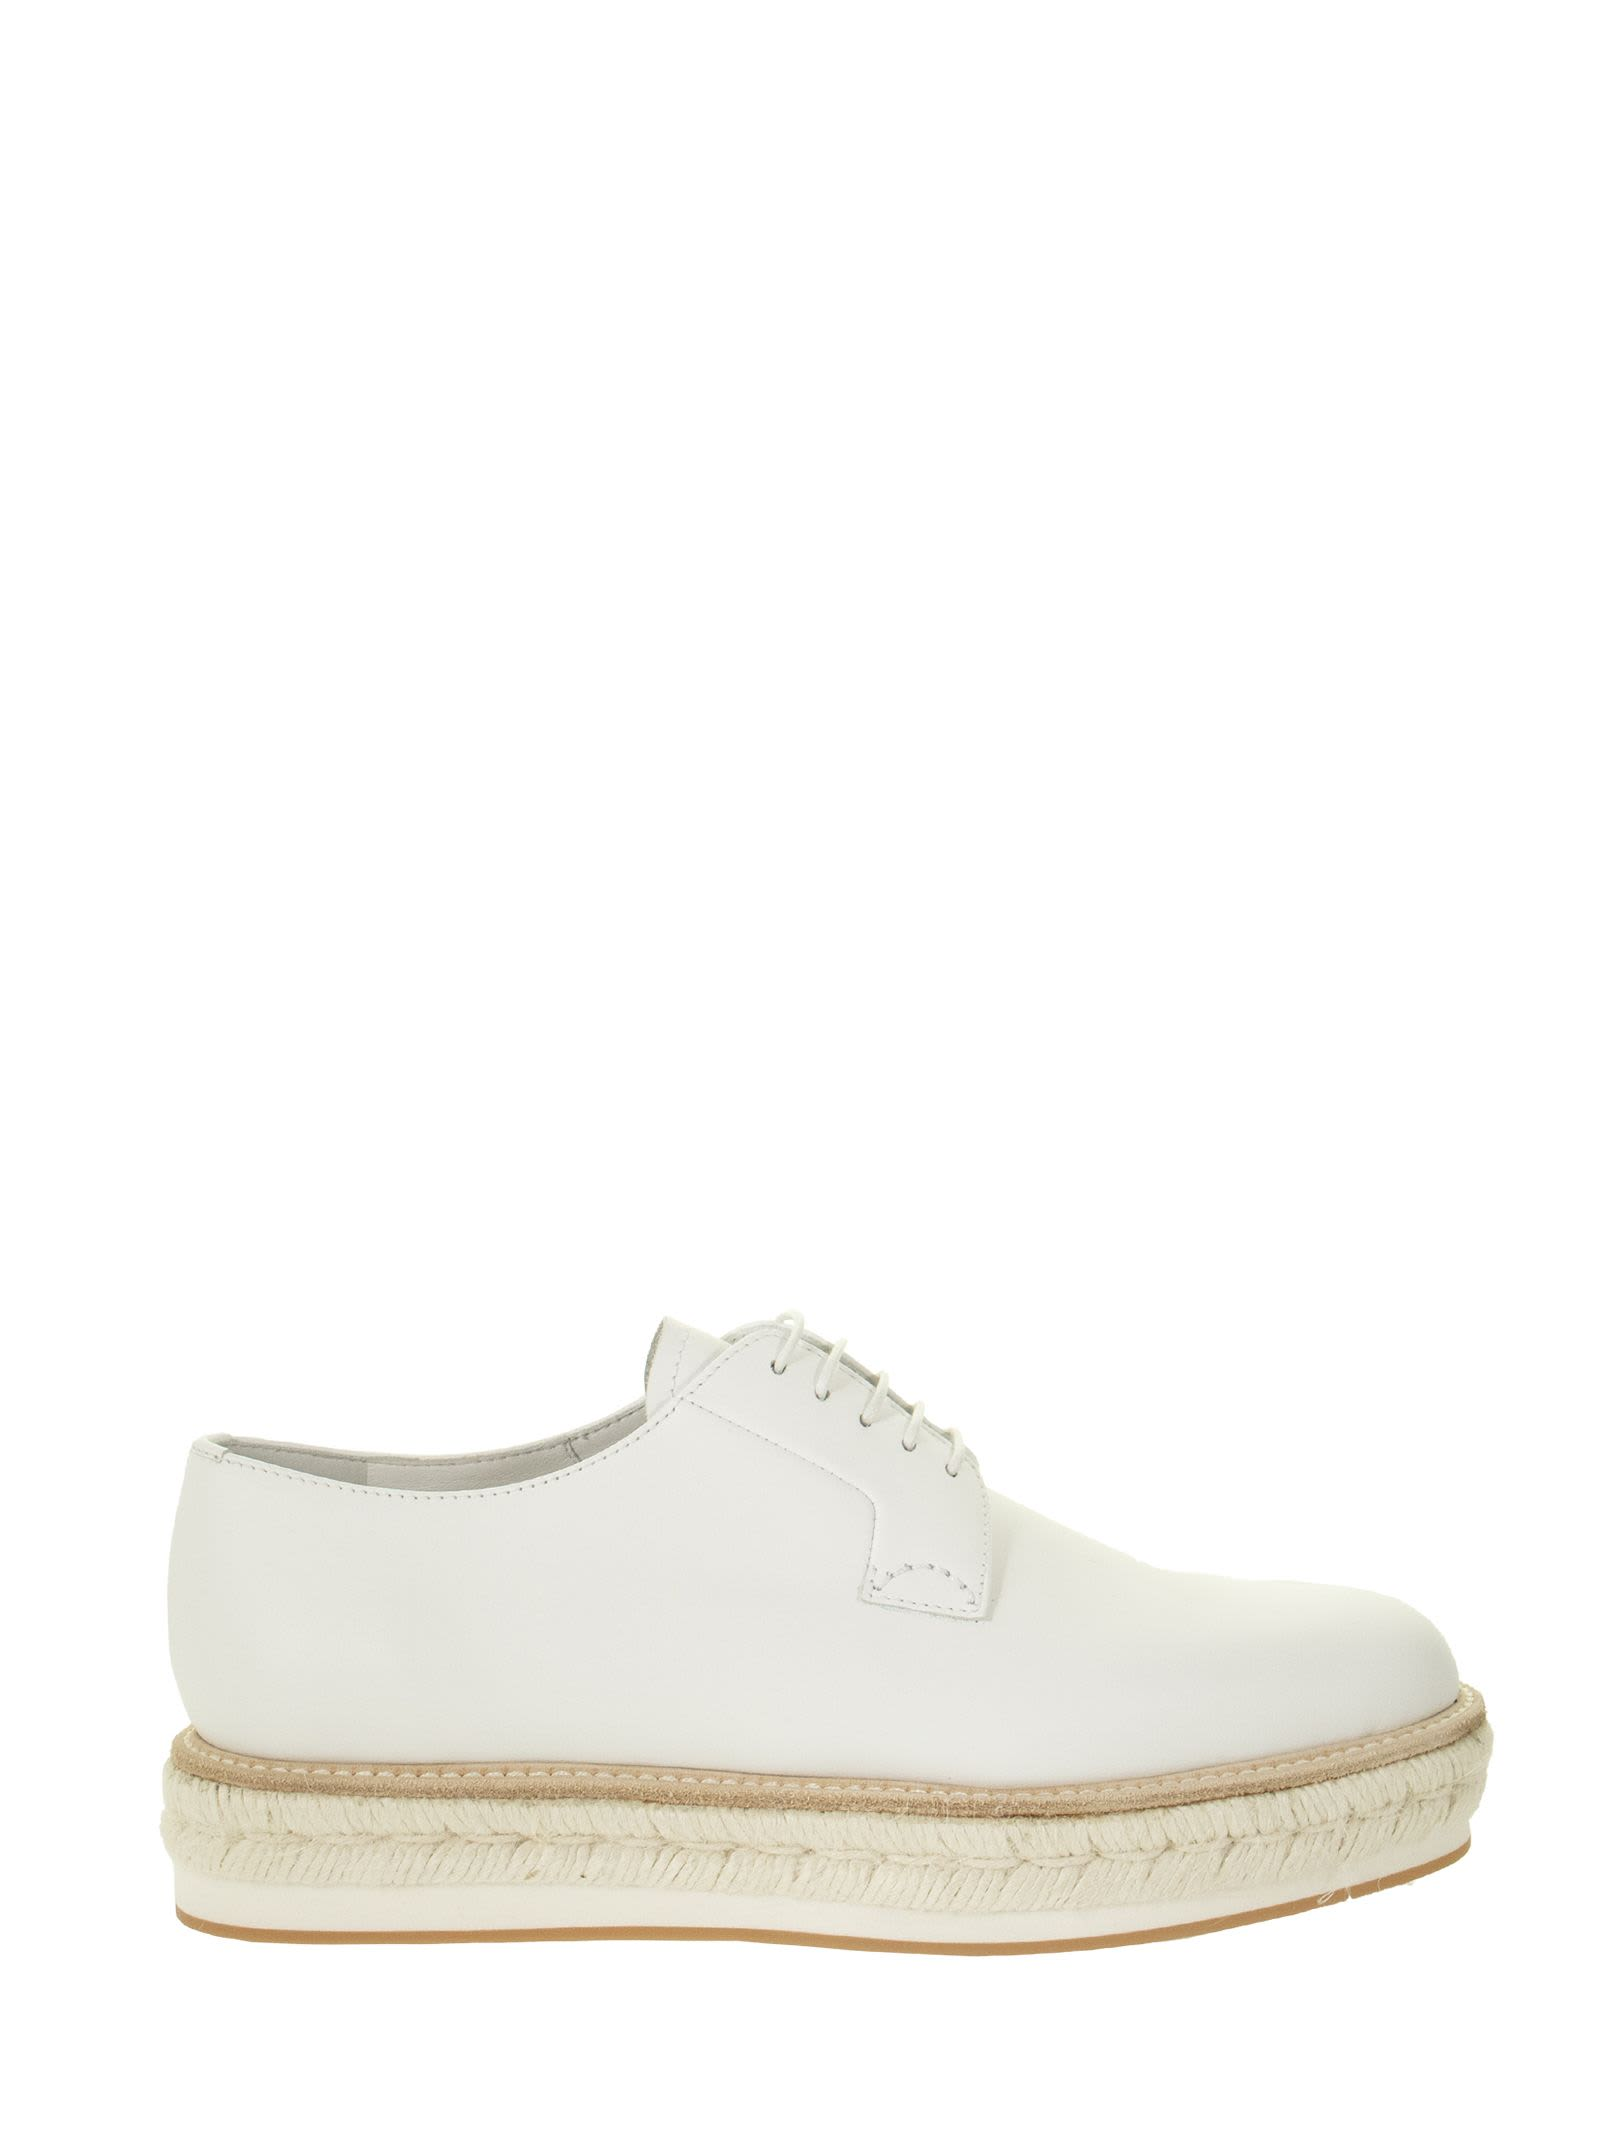 Church's Leathers SHANNON ROPE - OXFORD SHOES WHIT ROPE